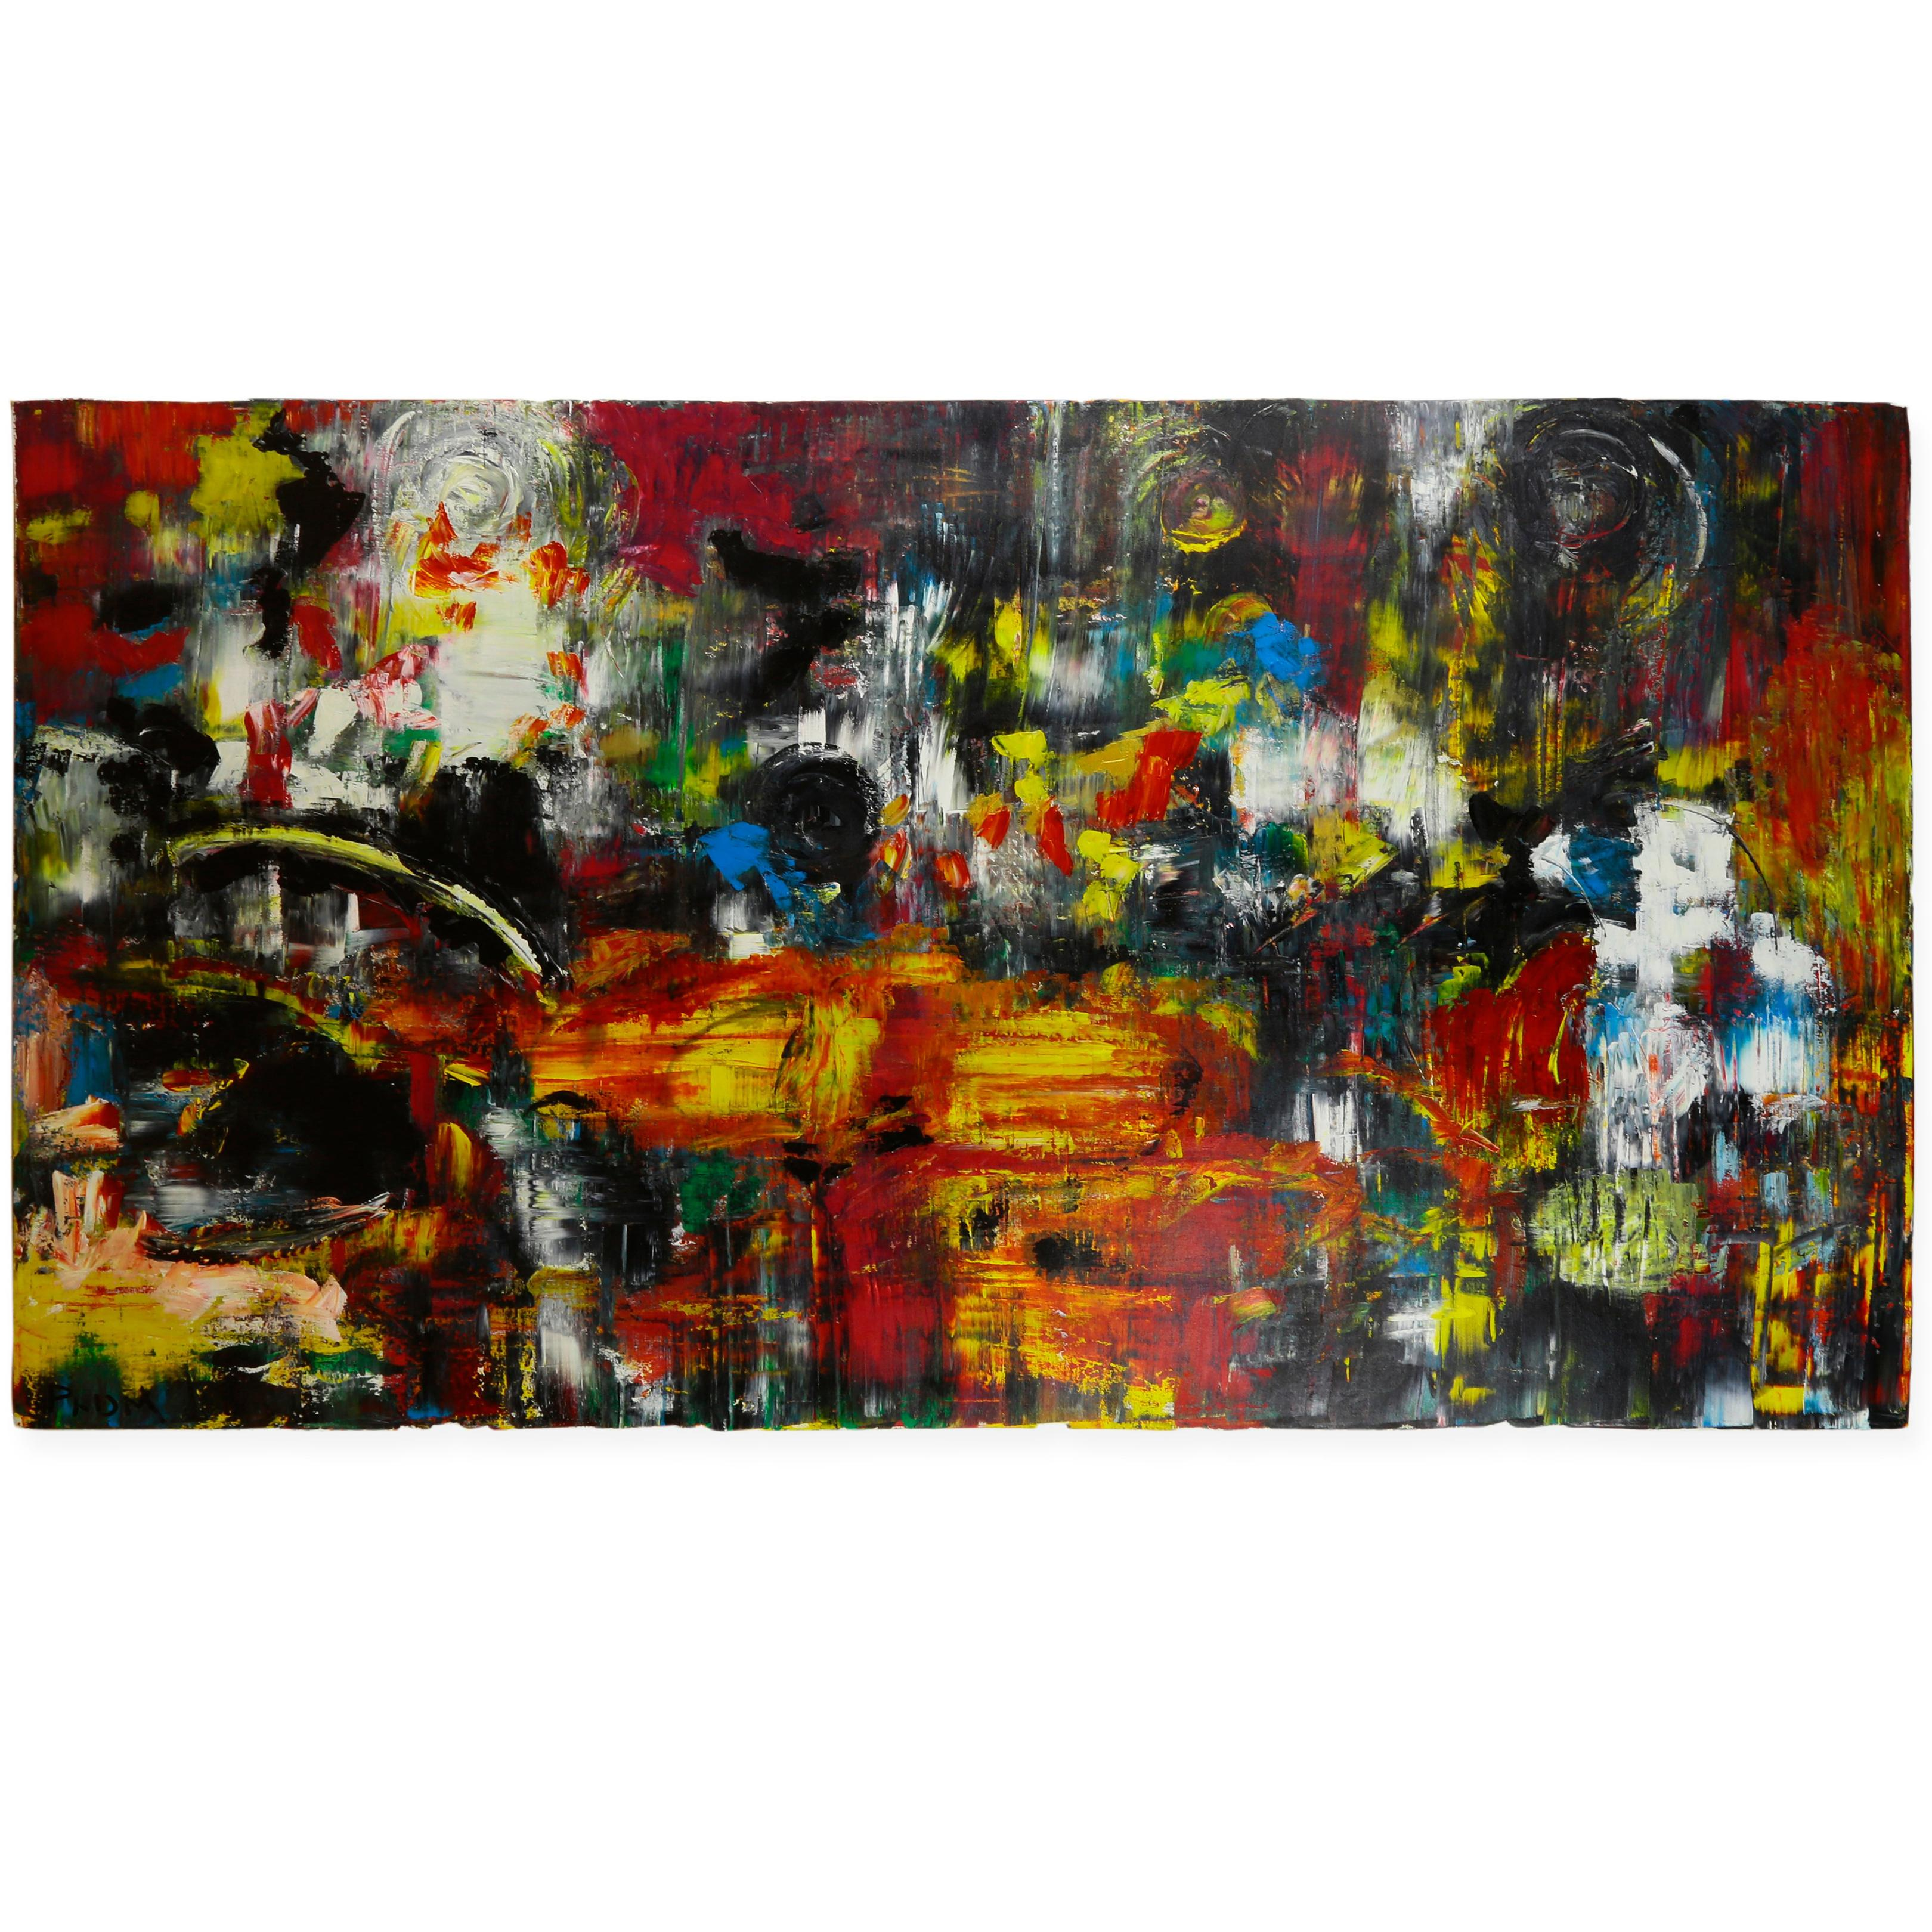 Cathedral Acrylic on Canvas Abstract Painting Andrew Plum